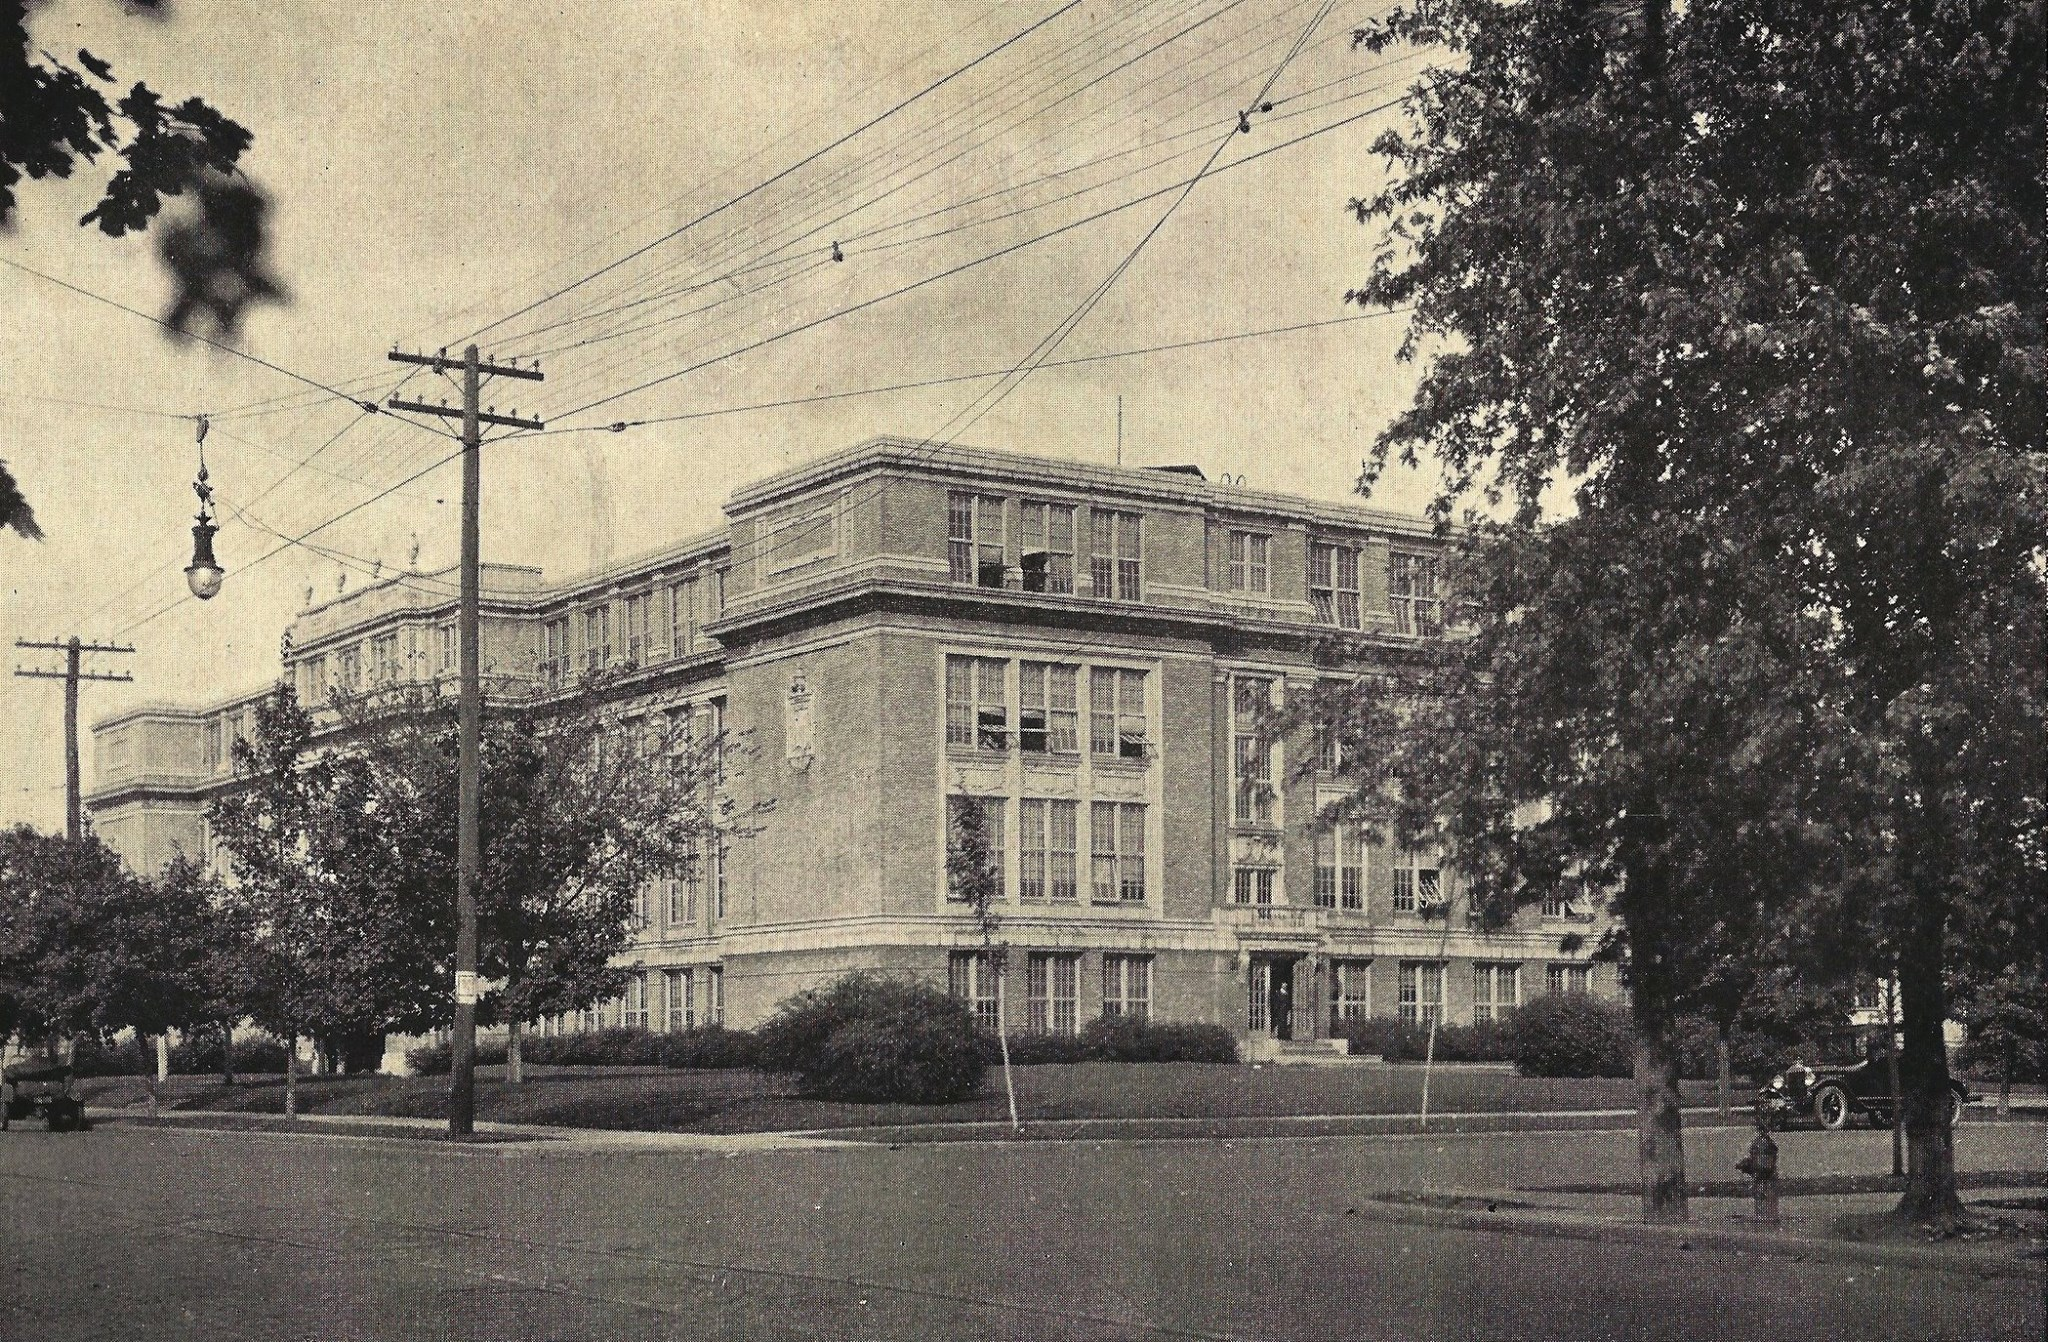 Looking north at HHS in 1928